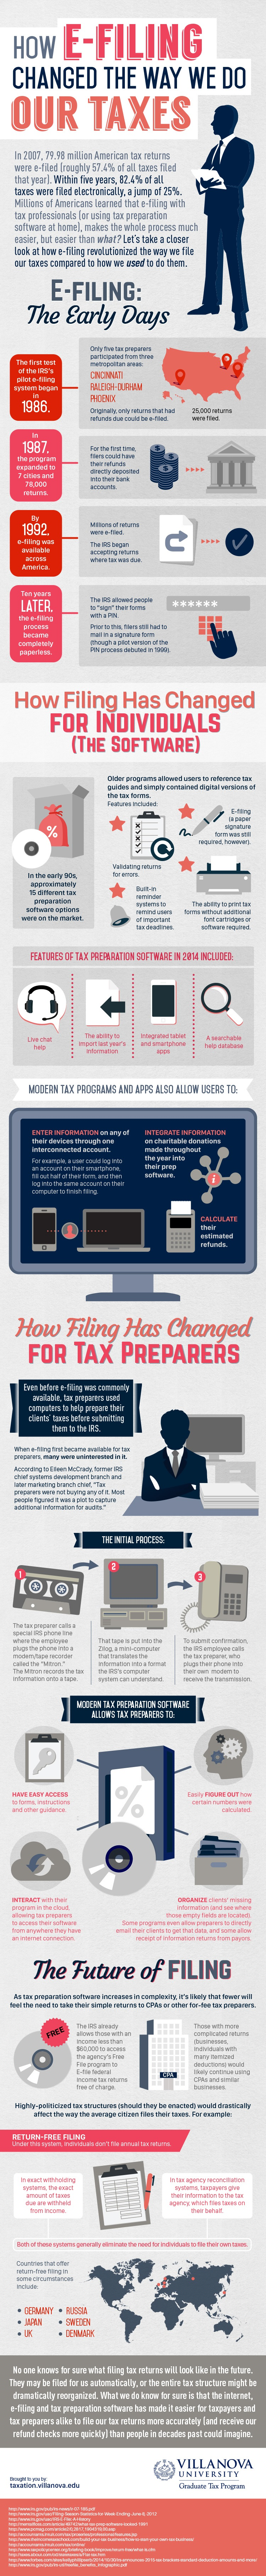 VLS Grad Tax Infographic E filing How E filing Changed the Way We Do our Taxes